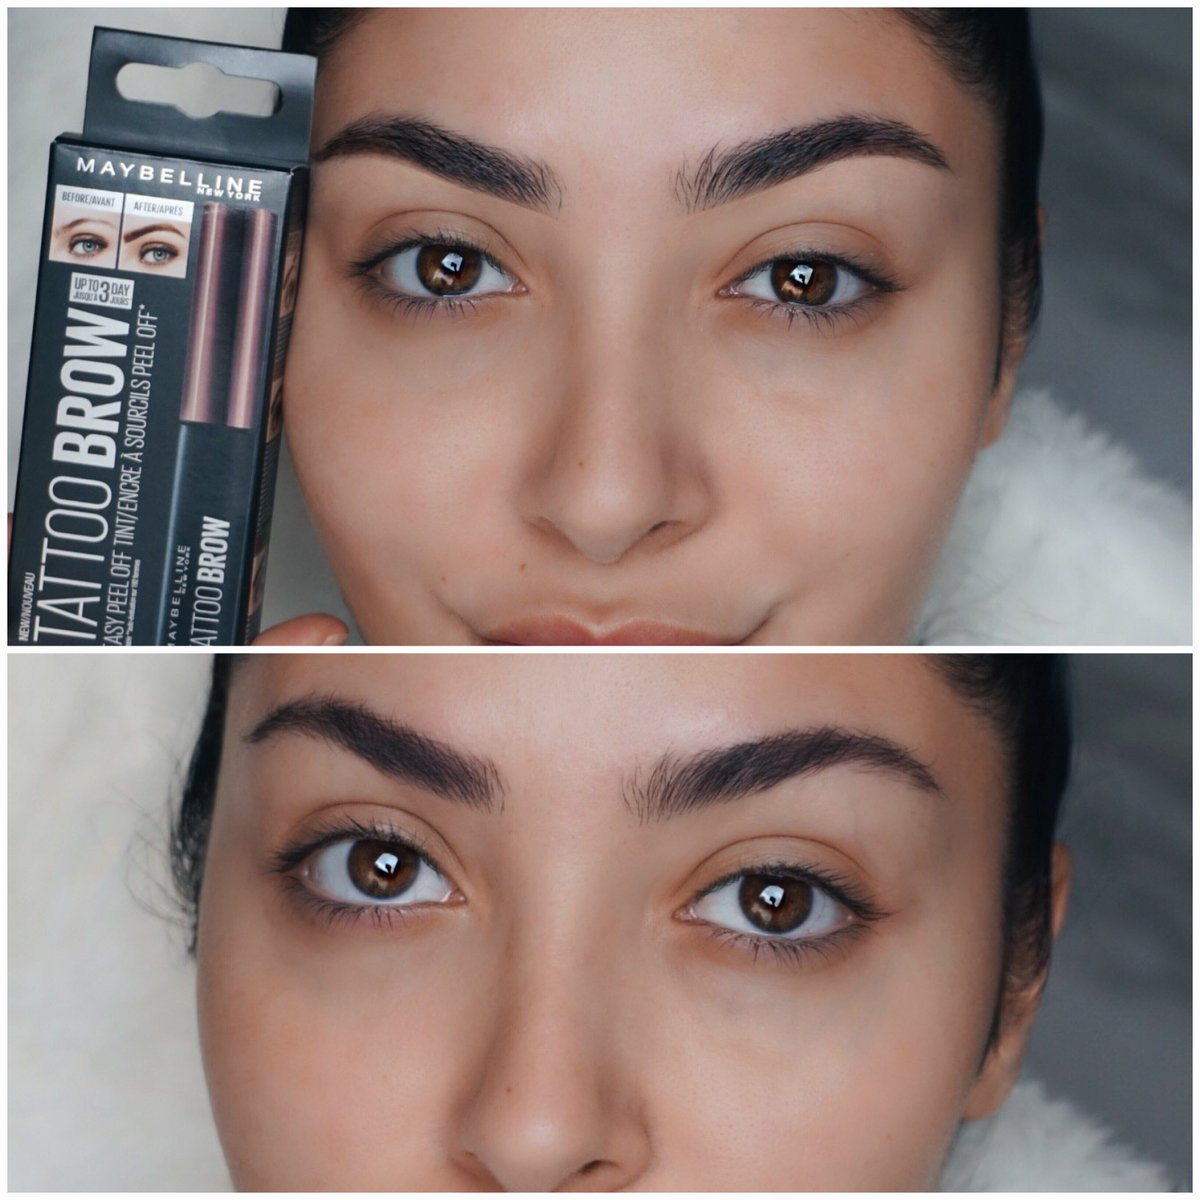 Check out the #PowerBrows on @TheNinaVee after using #TattooBrow!  #TattooBrow You can see the difference in 3 simple steps. Apply. Set. Peel Off. pic.twitter.com/CzHPEqNBX5